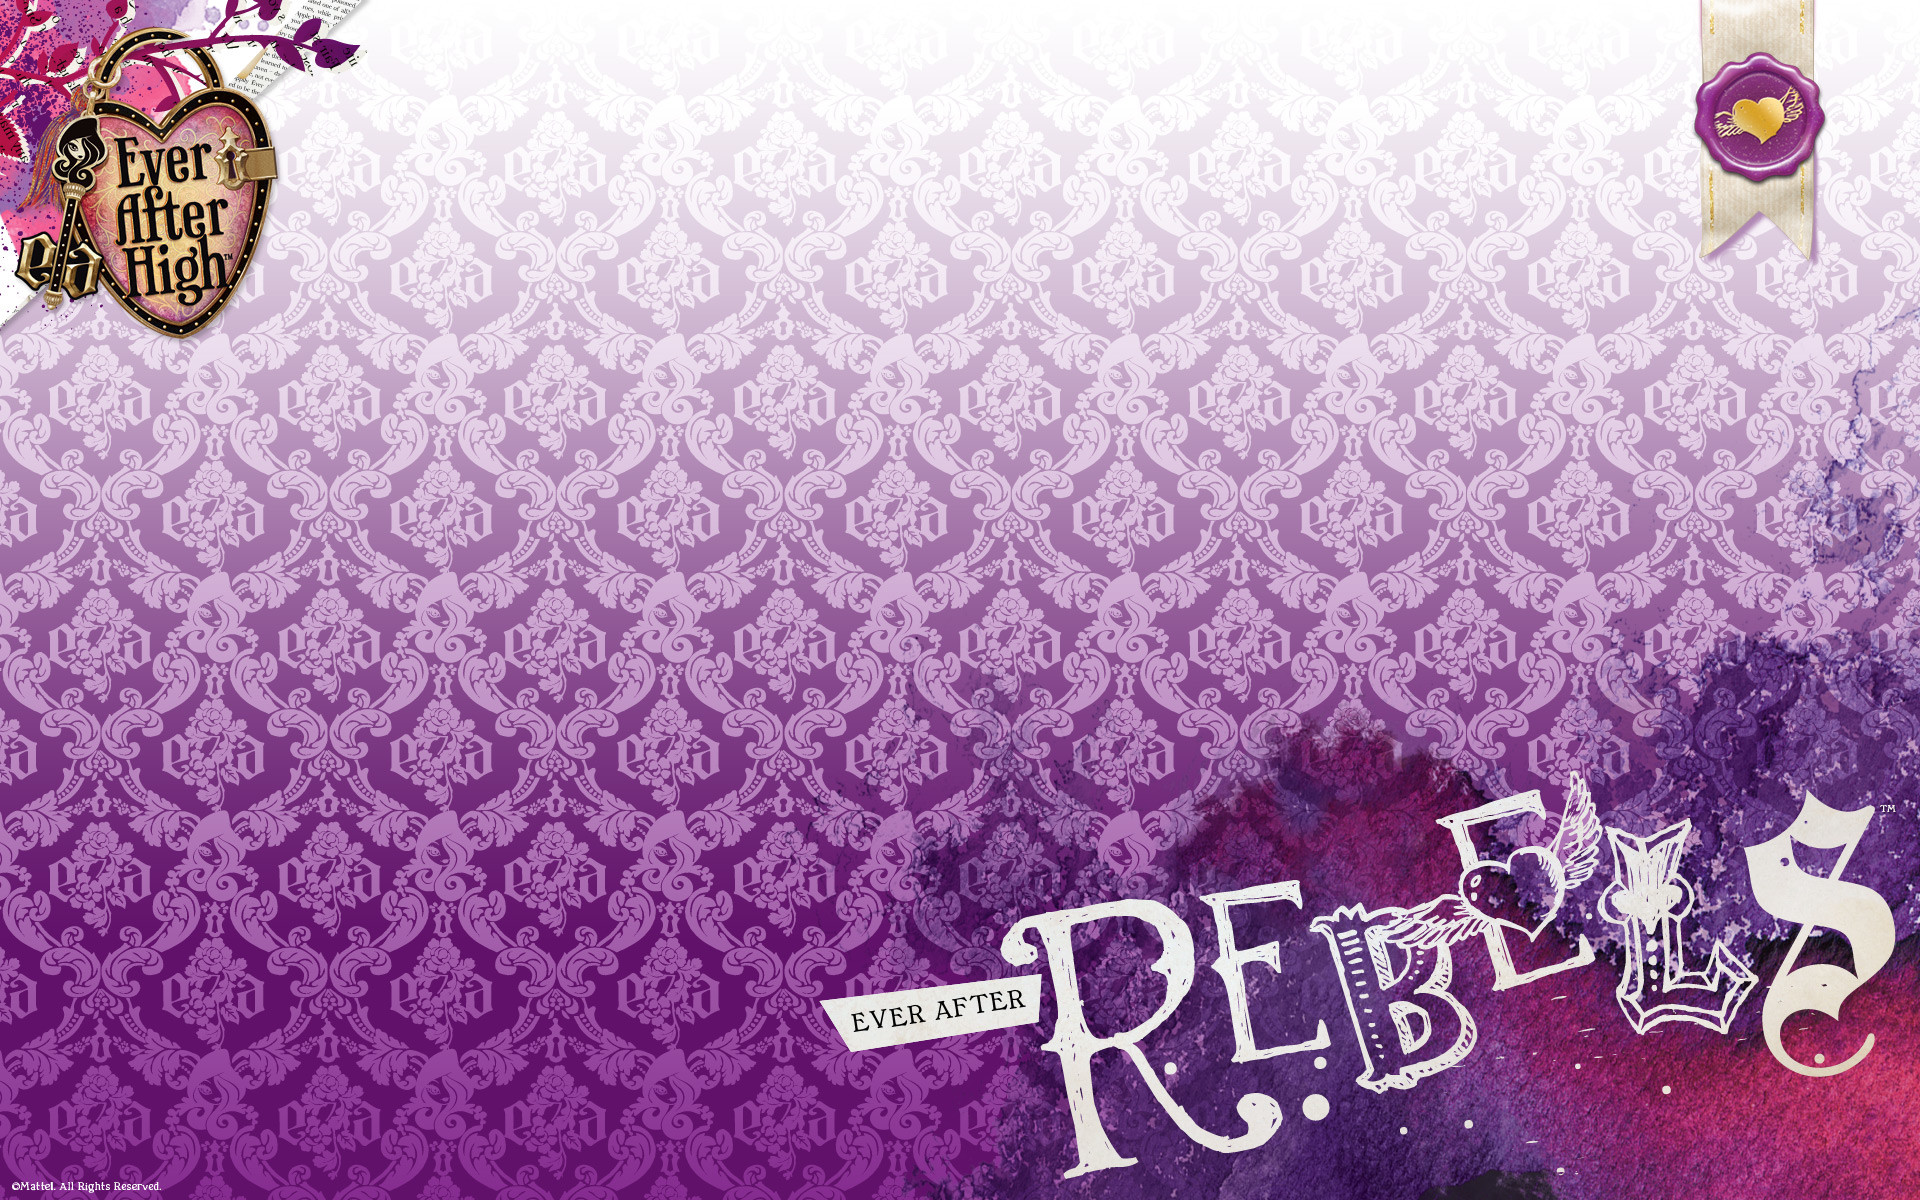 Explore Raven Queen, Ever After High, and more! Rebel wallpaper